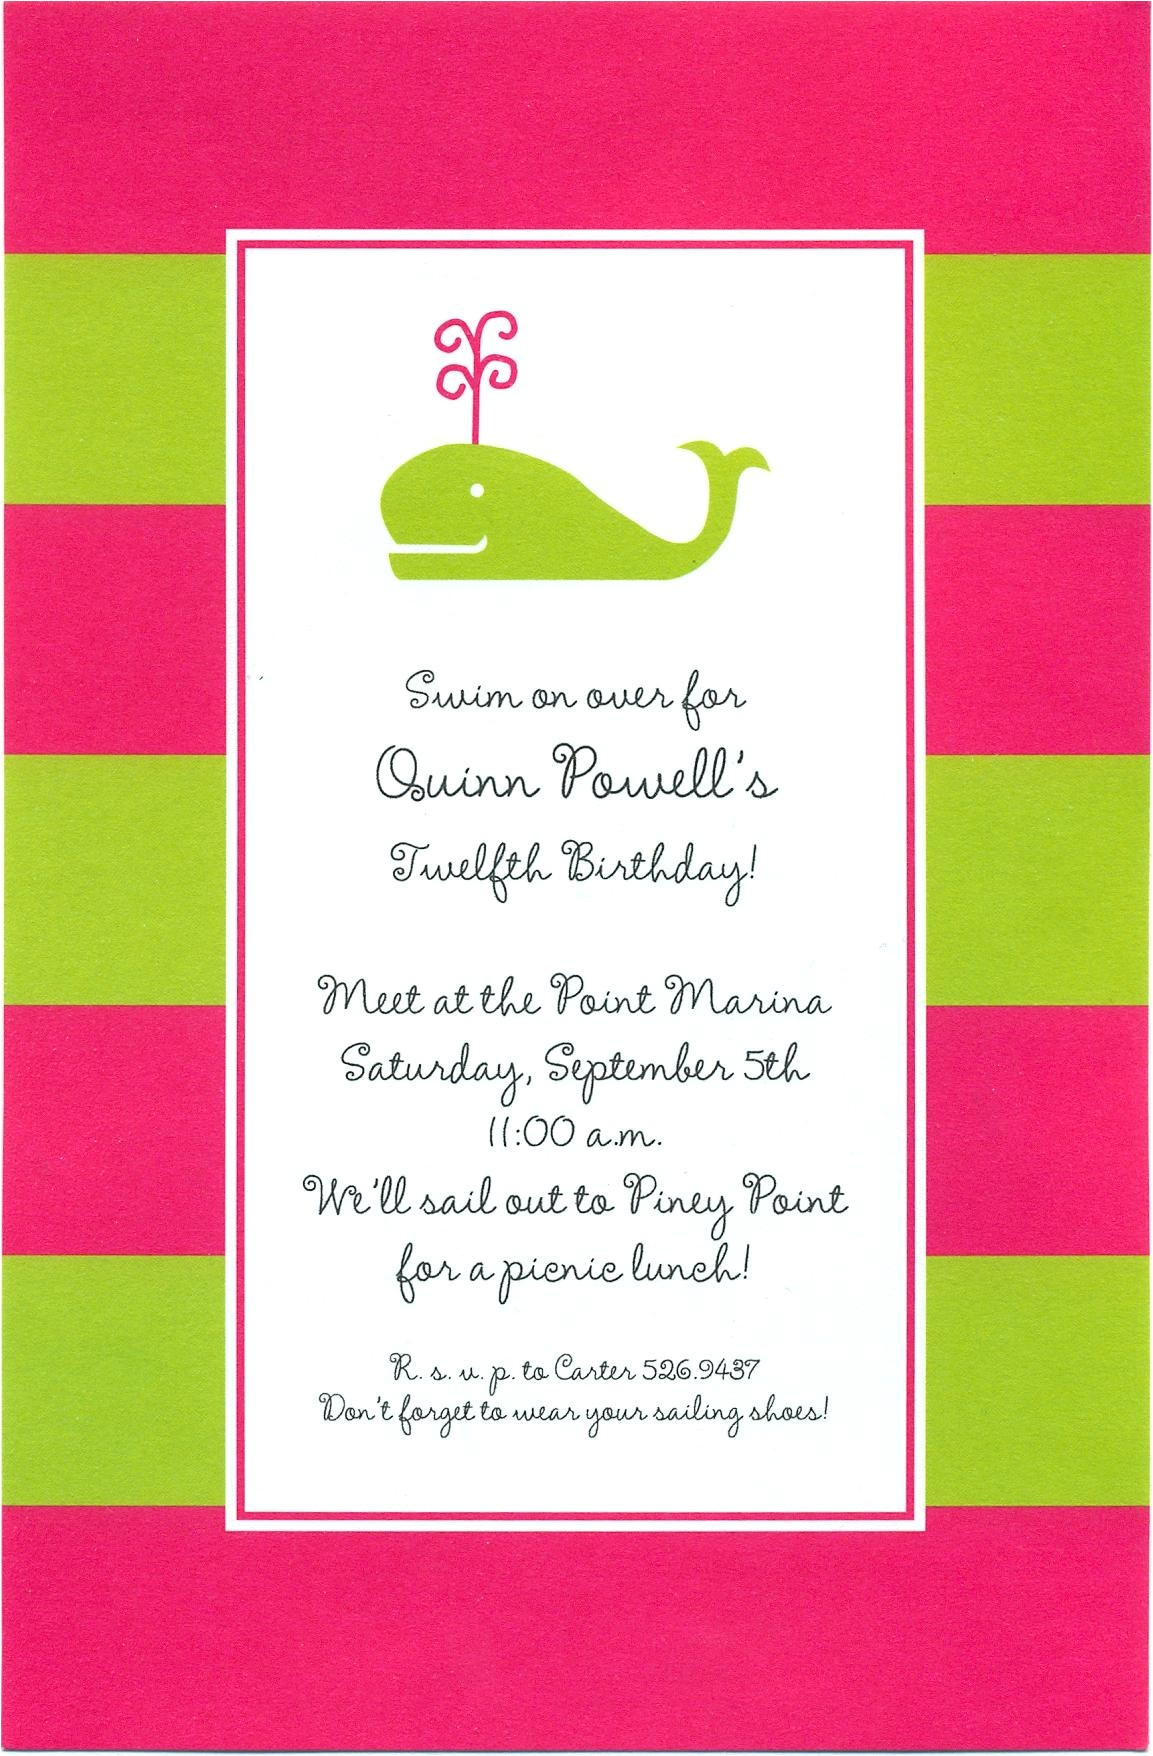 appetizer party invitation wording